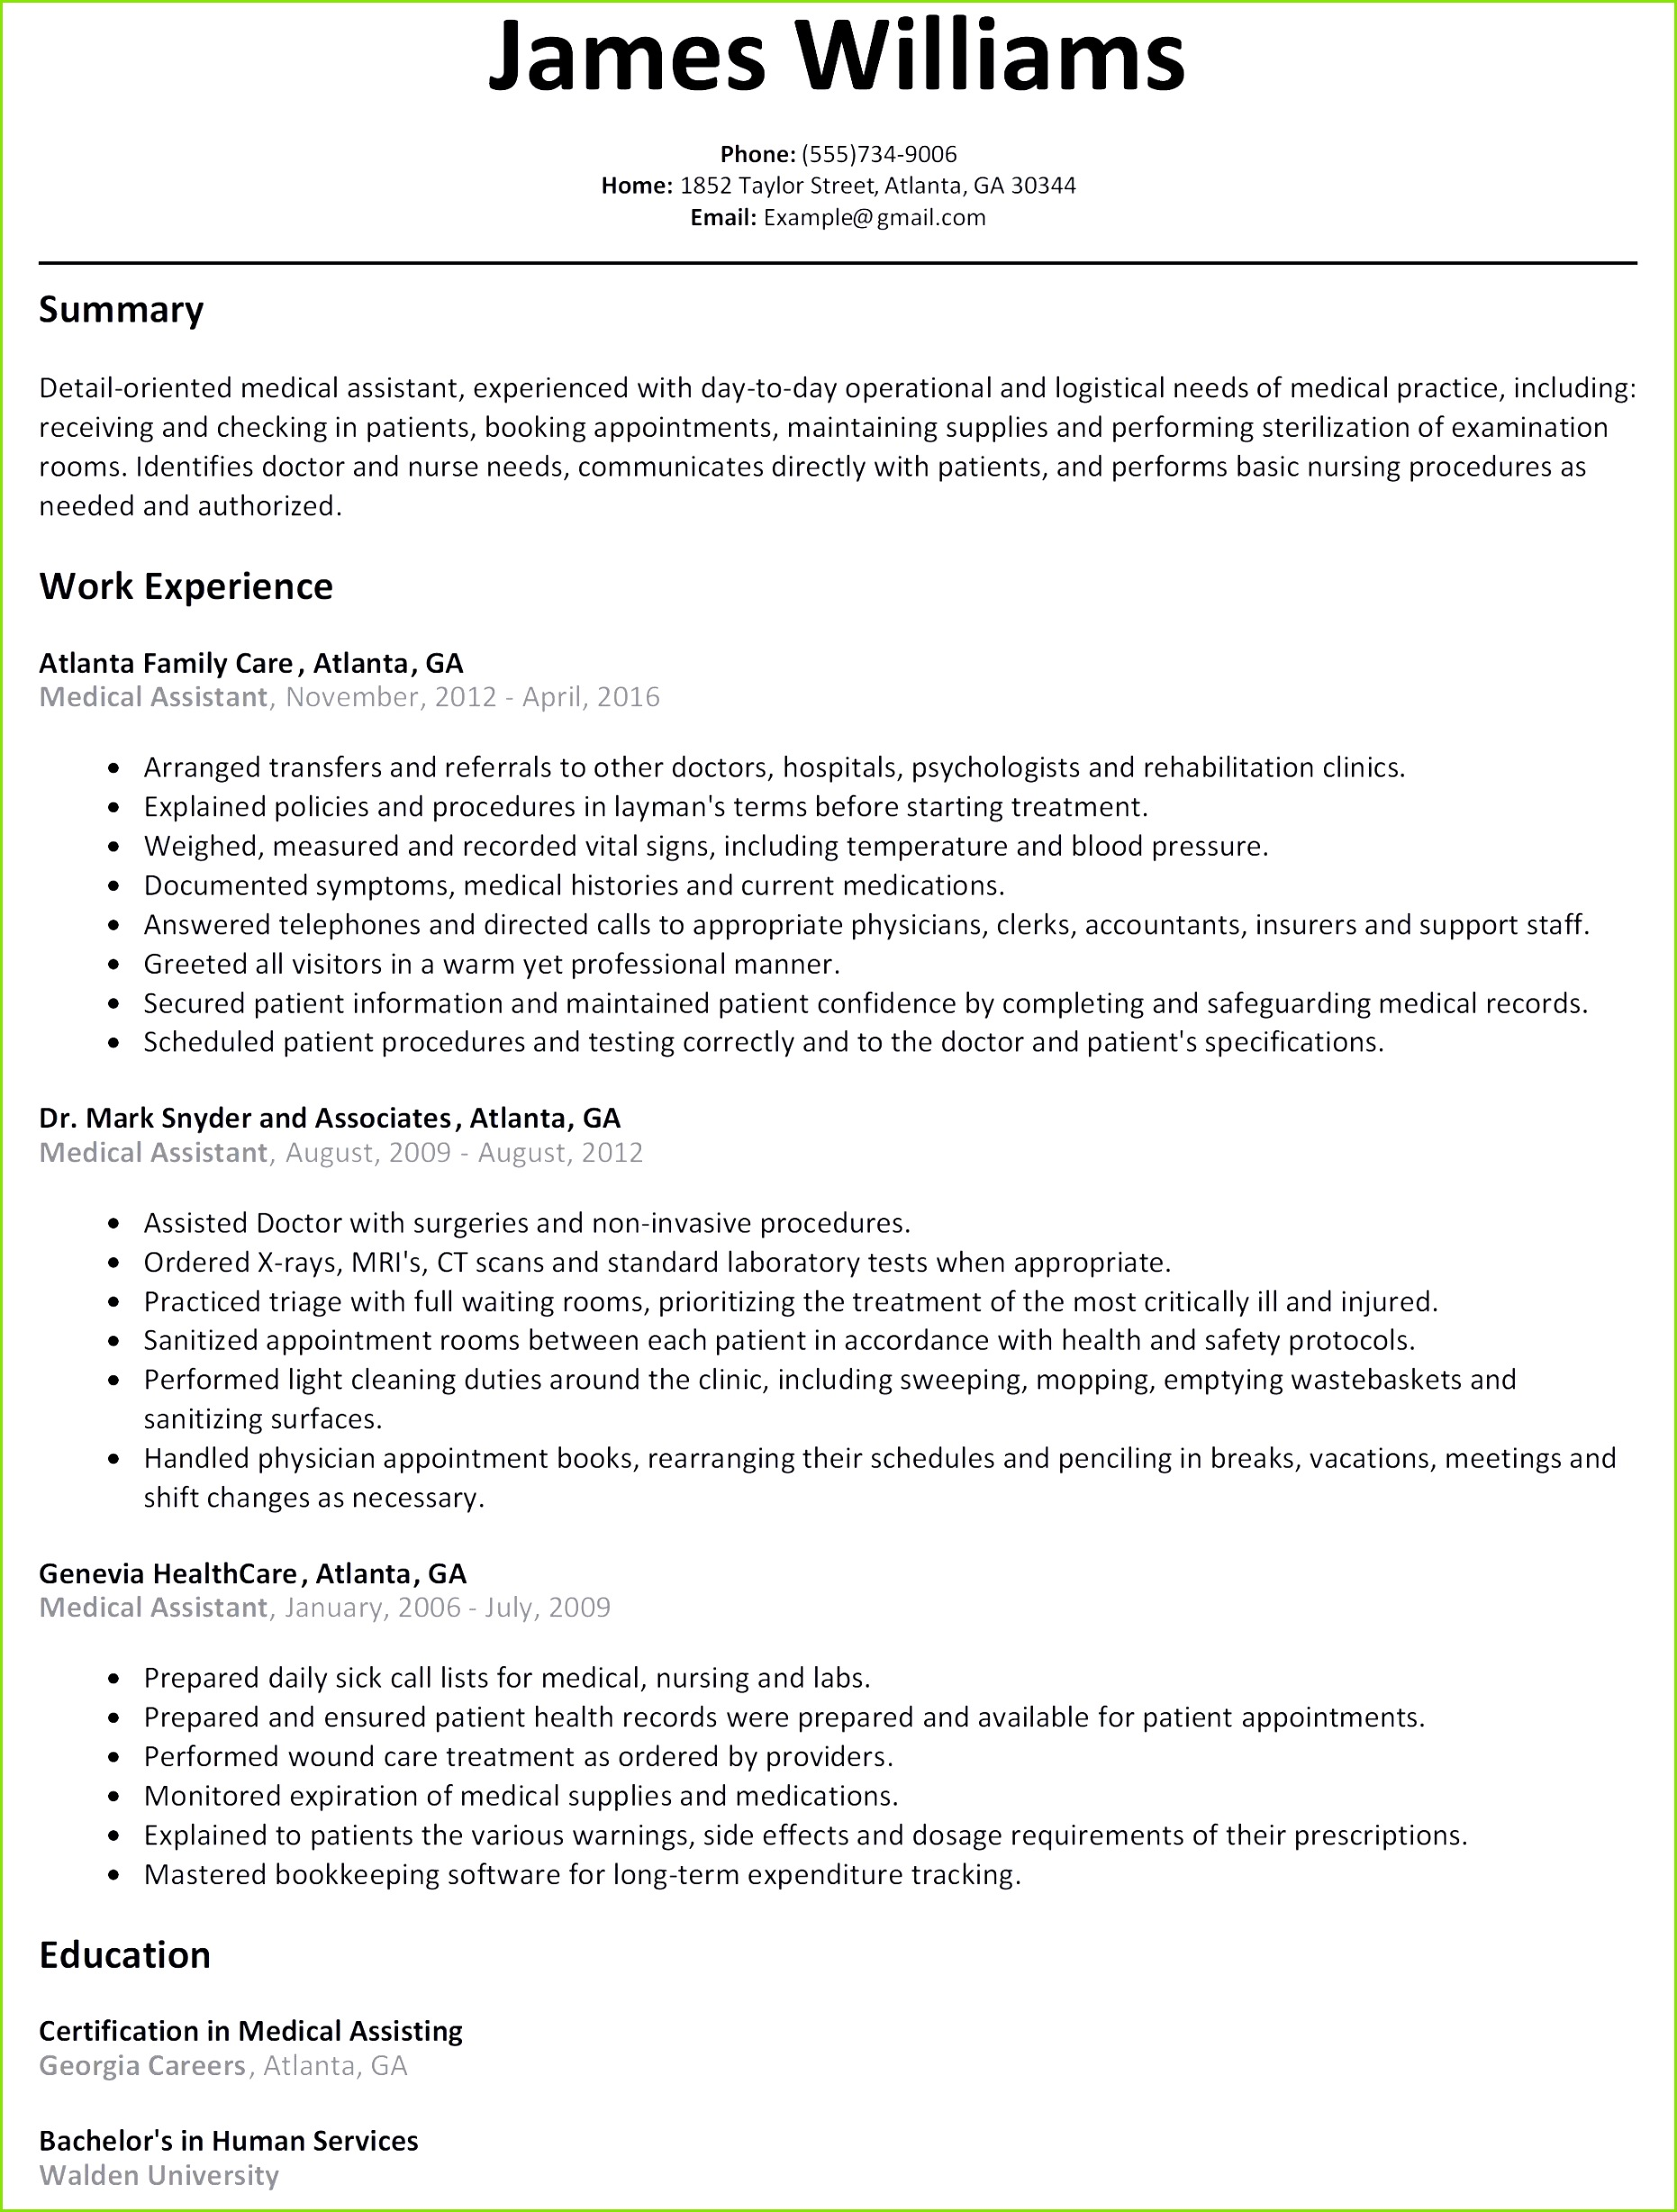 healthcare resume template free new resume template free word new od specialist sample resume resume for